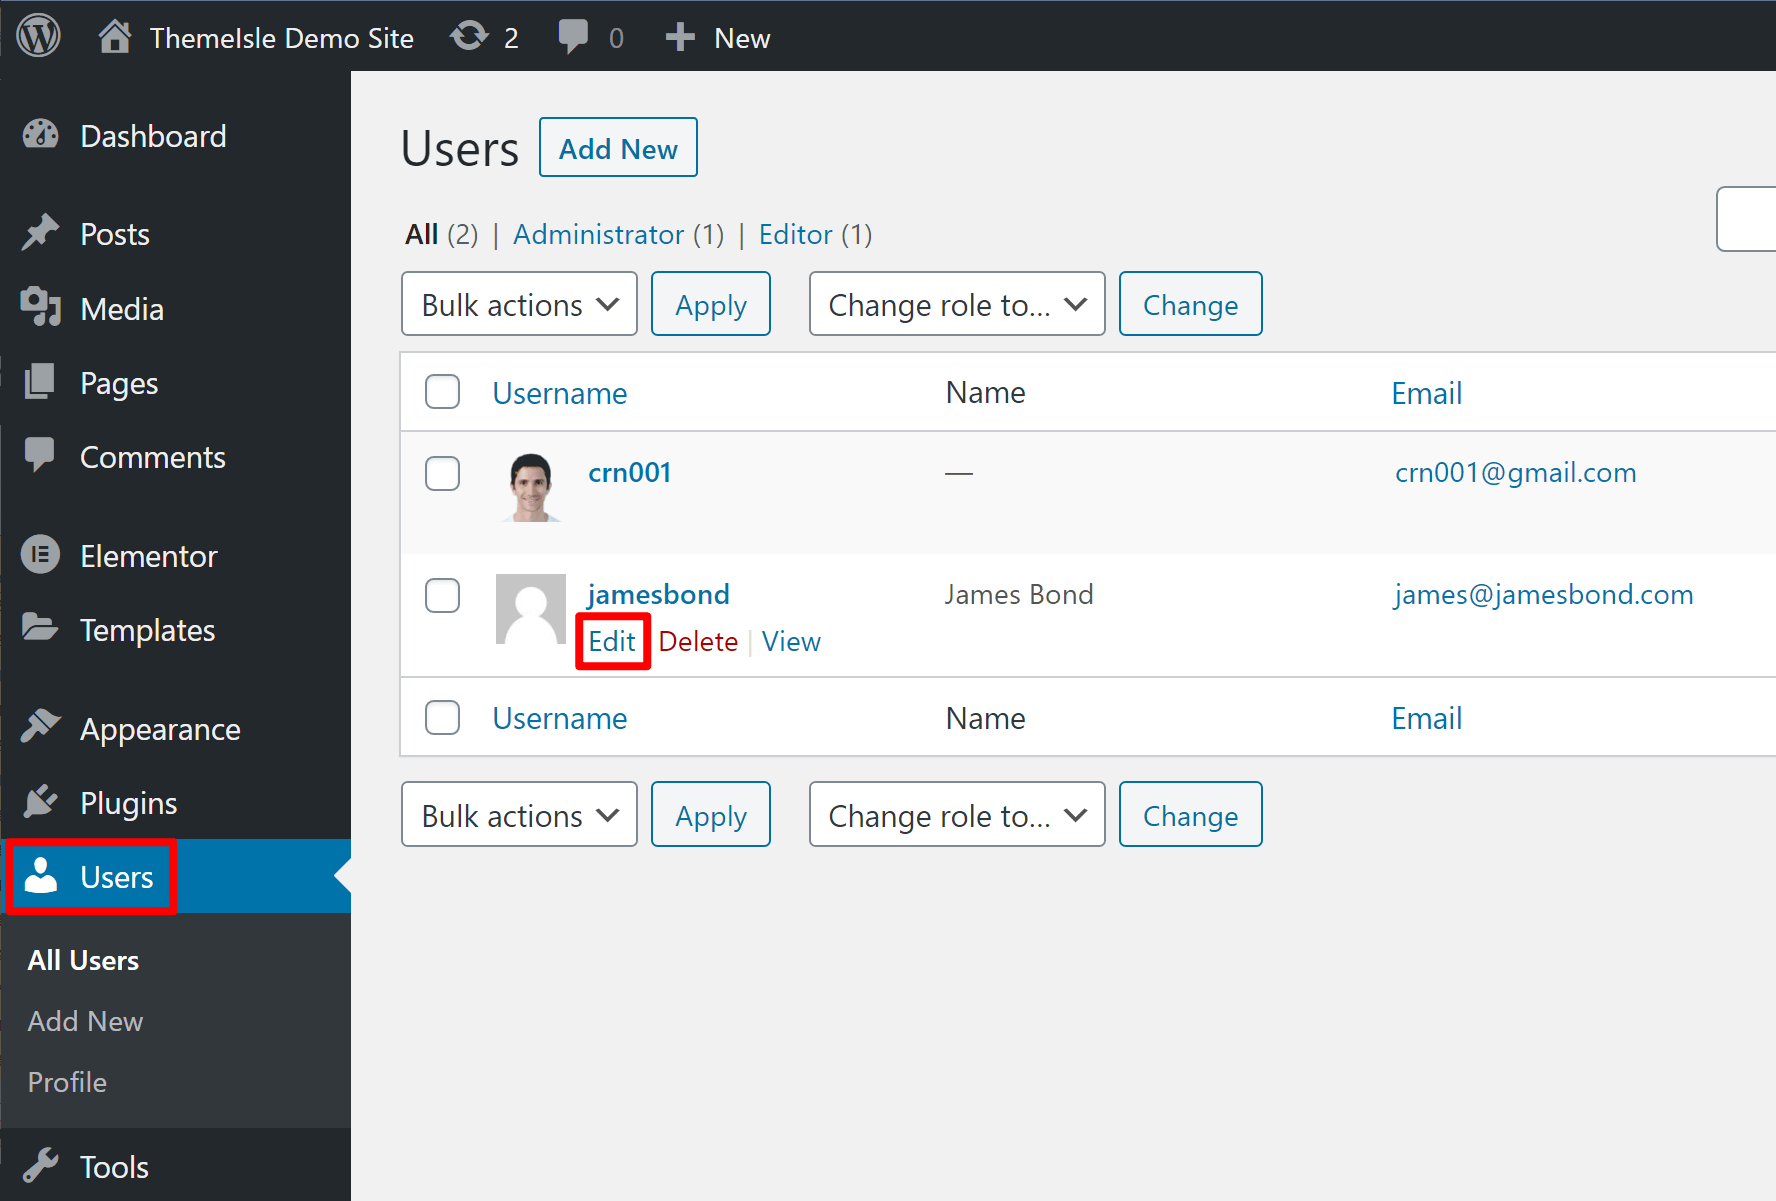 Edit another user's profile